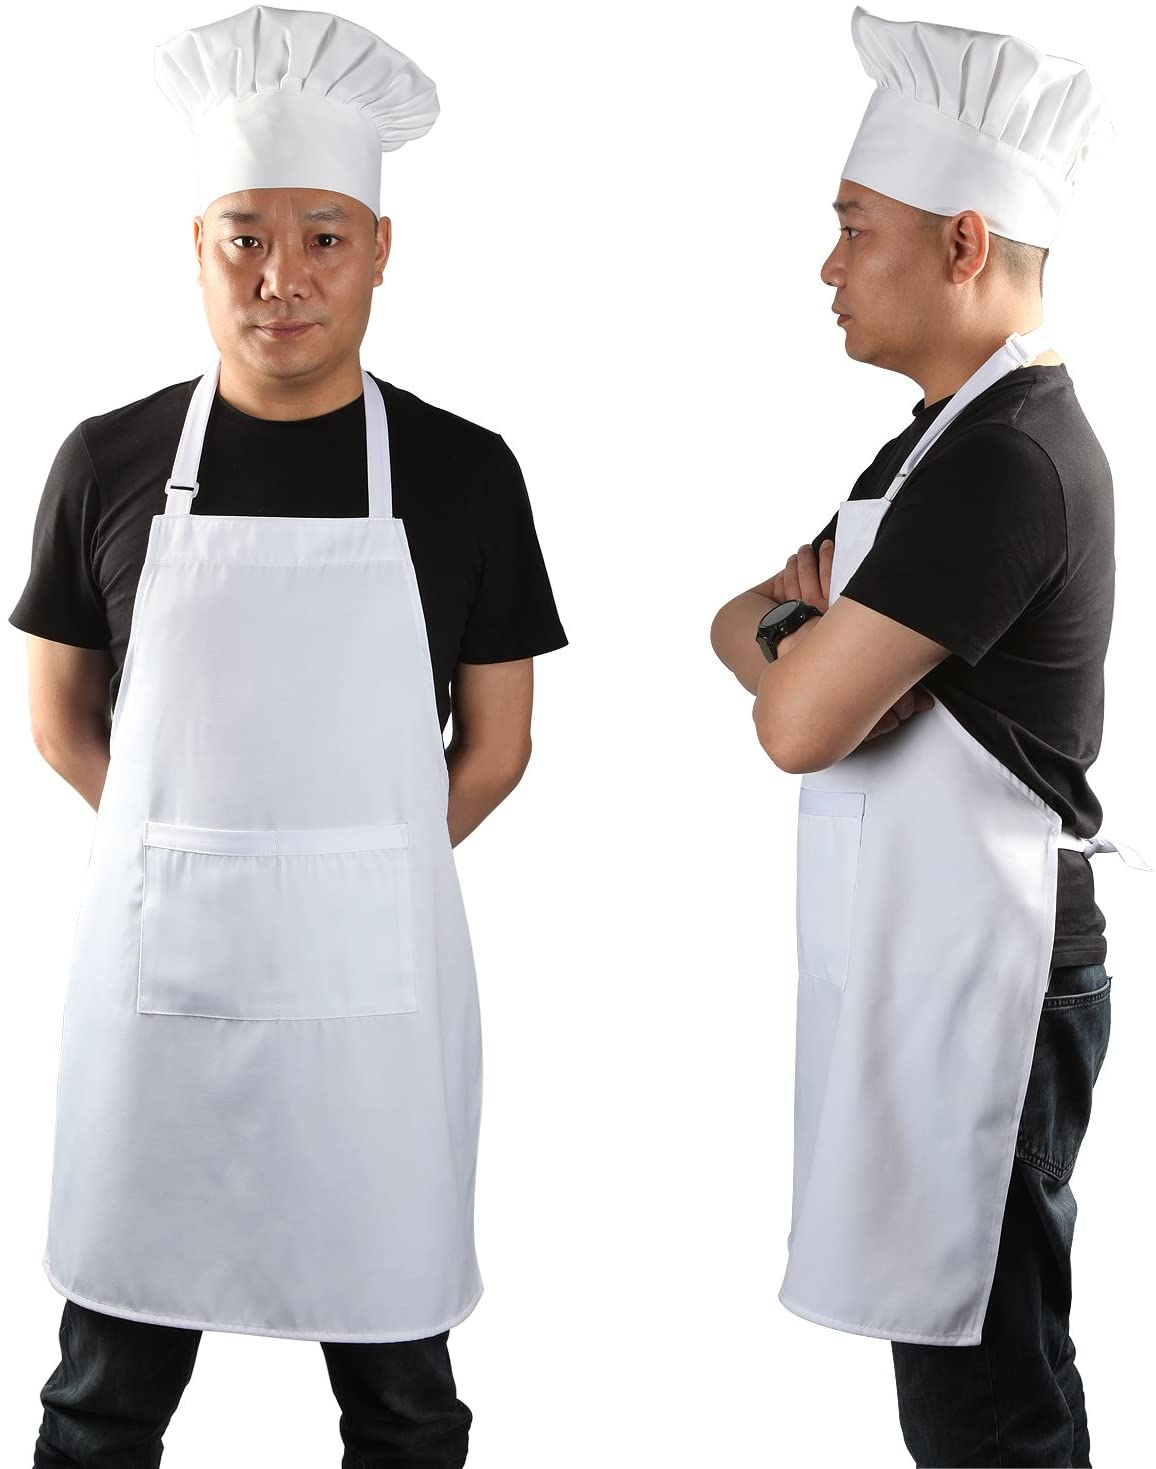 Amazon Com Chef Apron Set Chef Hat And Kitchen Apron Adult Adjustable White Apron Baker Costume For Men And Women 1 Set 33 L X 26 W Kitchen Dining